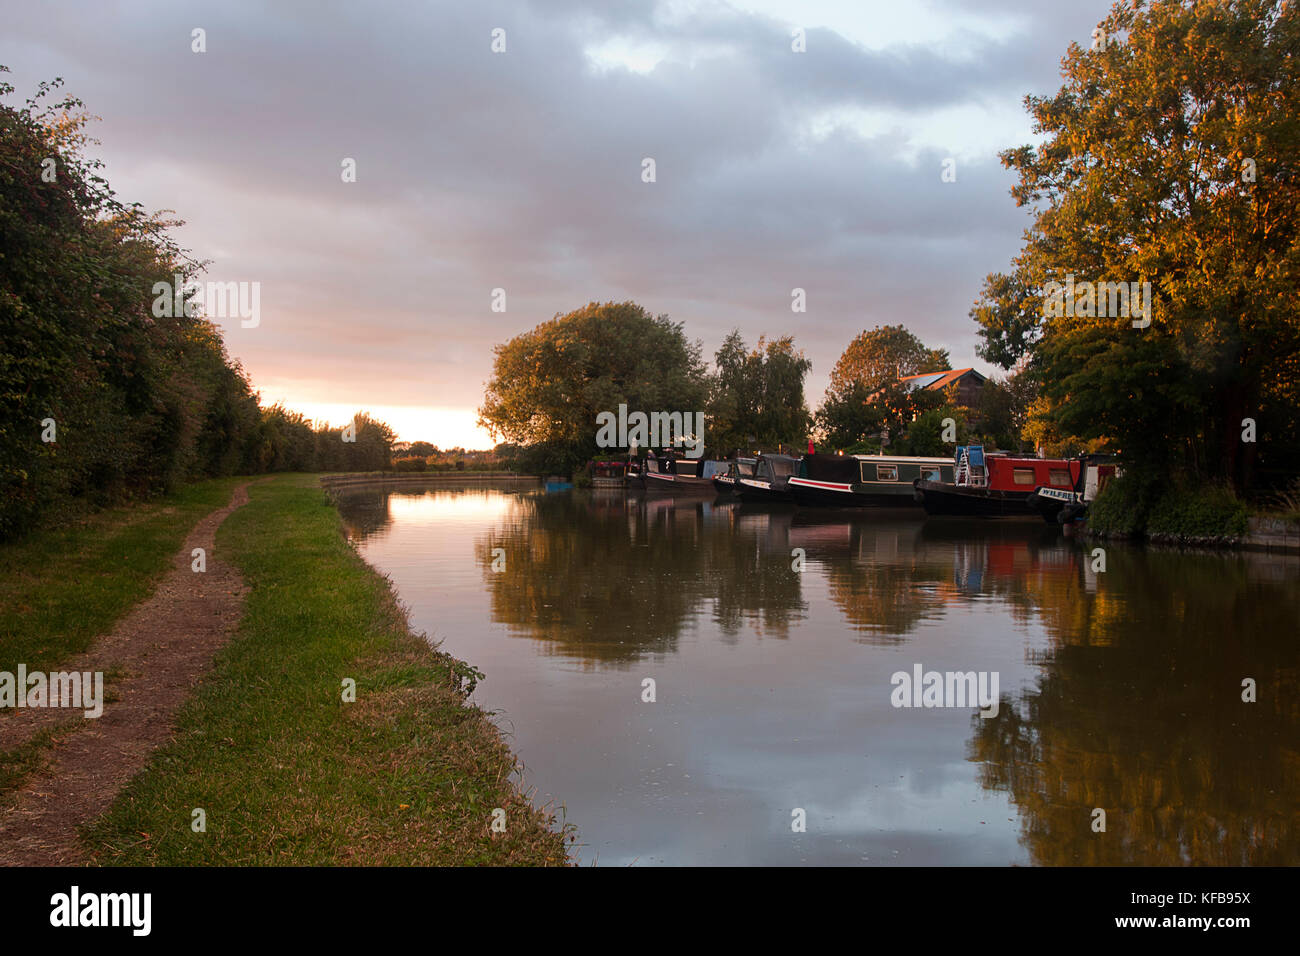 narrowboats and towpath along Cooks Wharf at sunset, Grand Union Canal Outer Aylesbury Ring, Cheddington, Buckinghamshire, Stock Photo